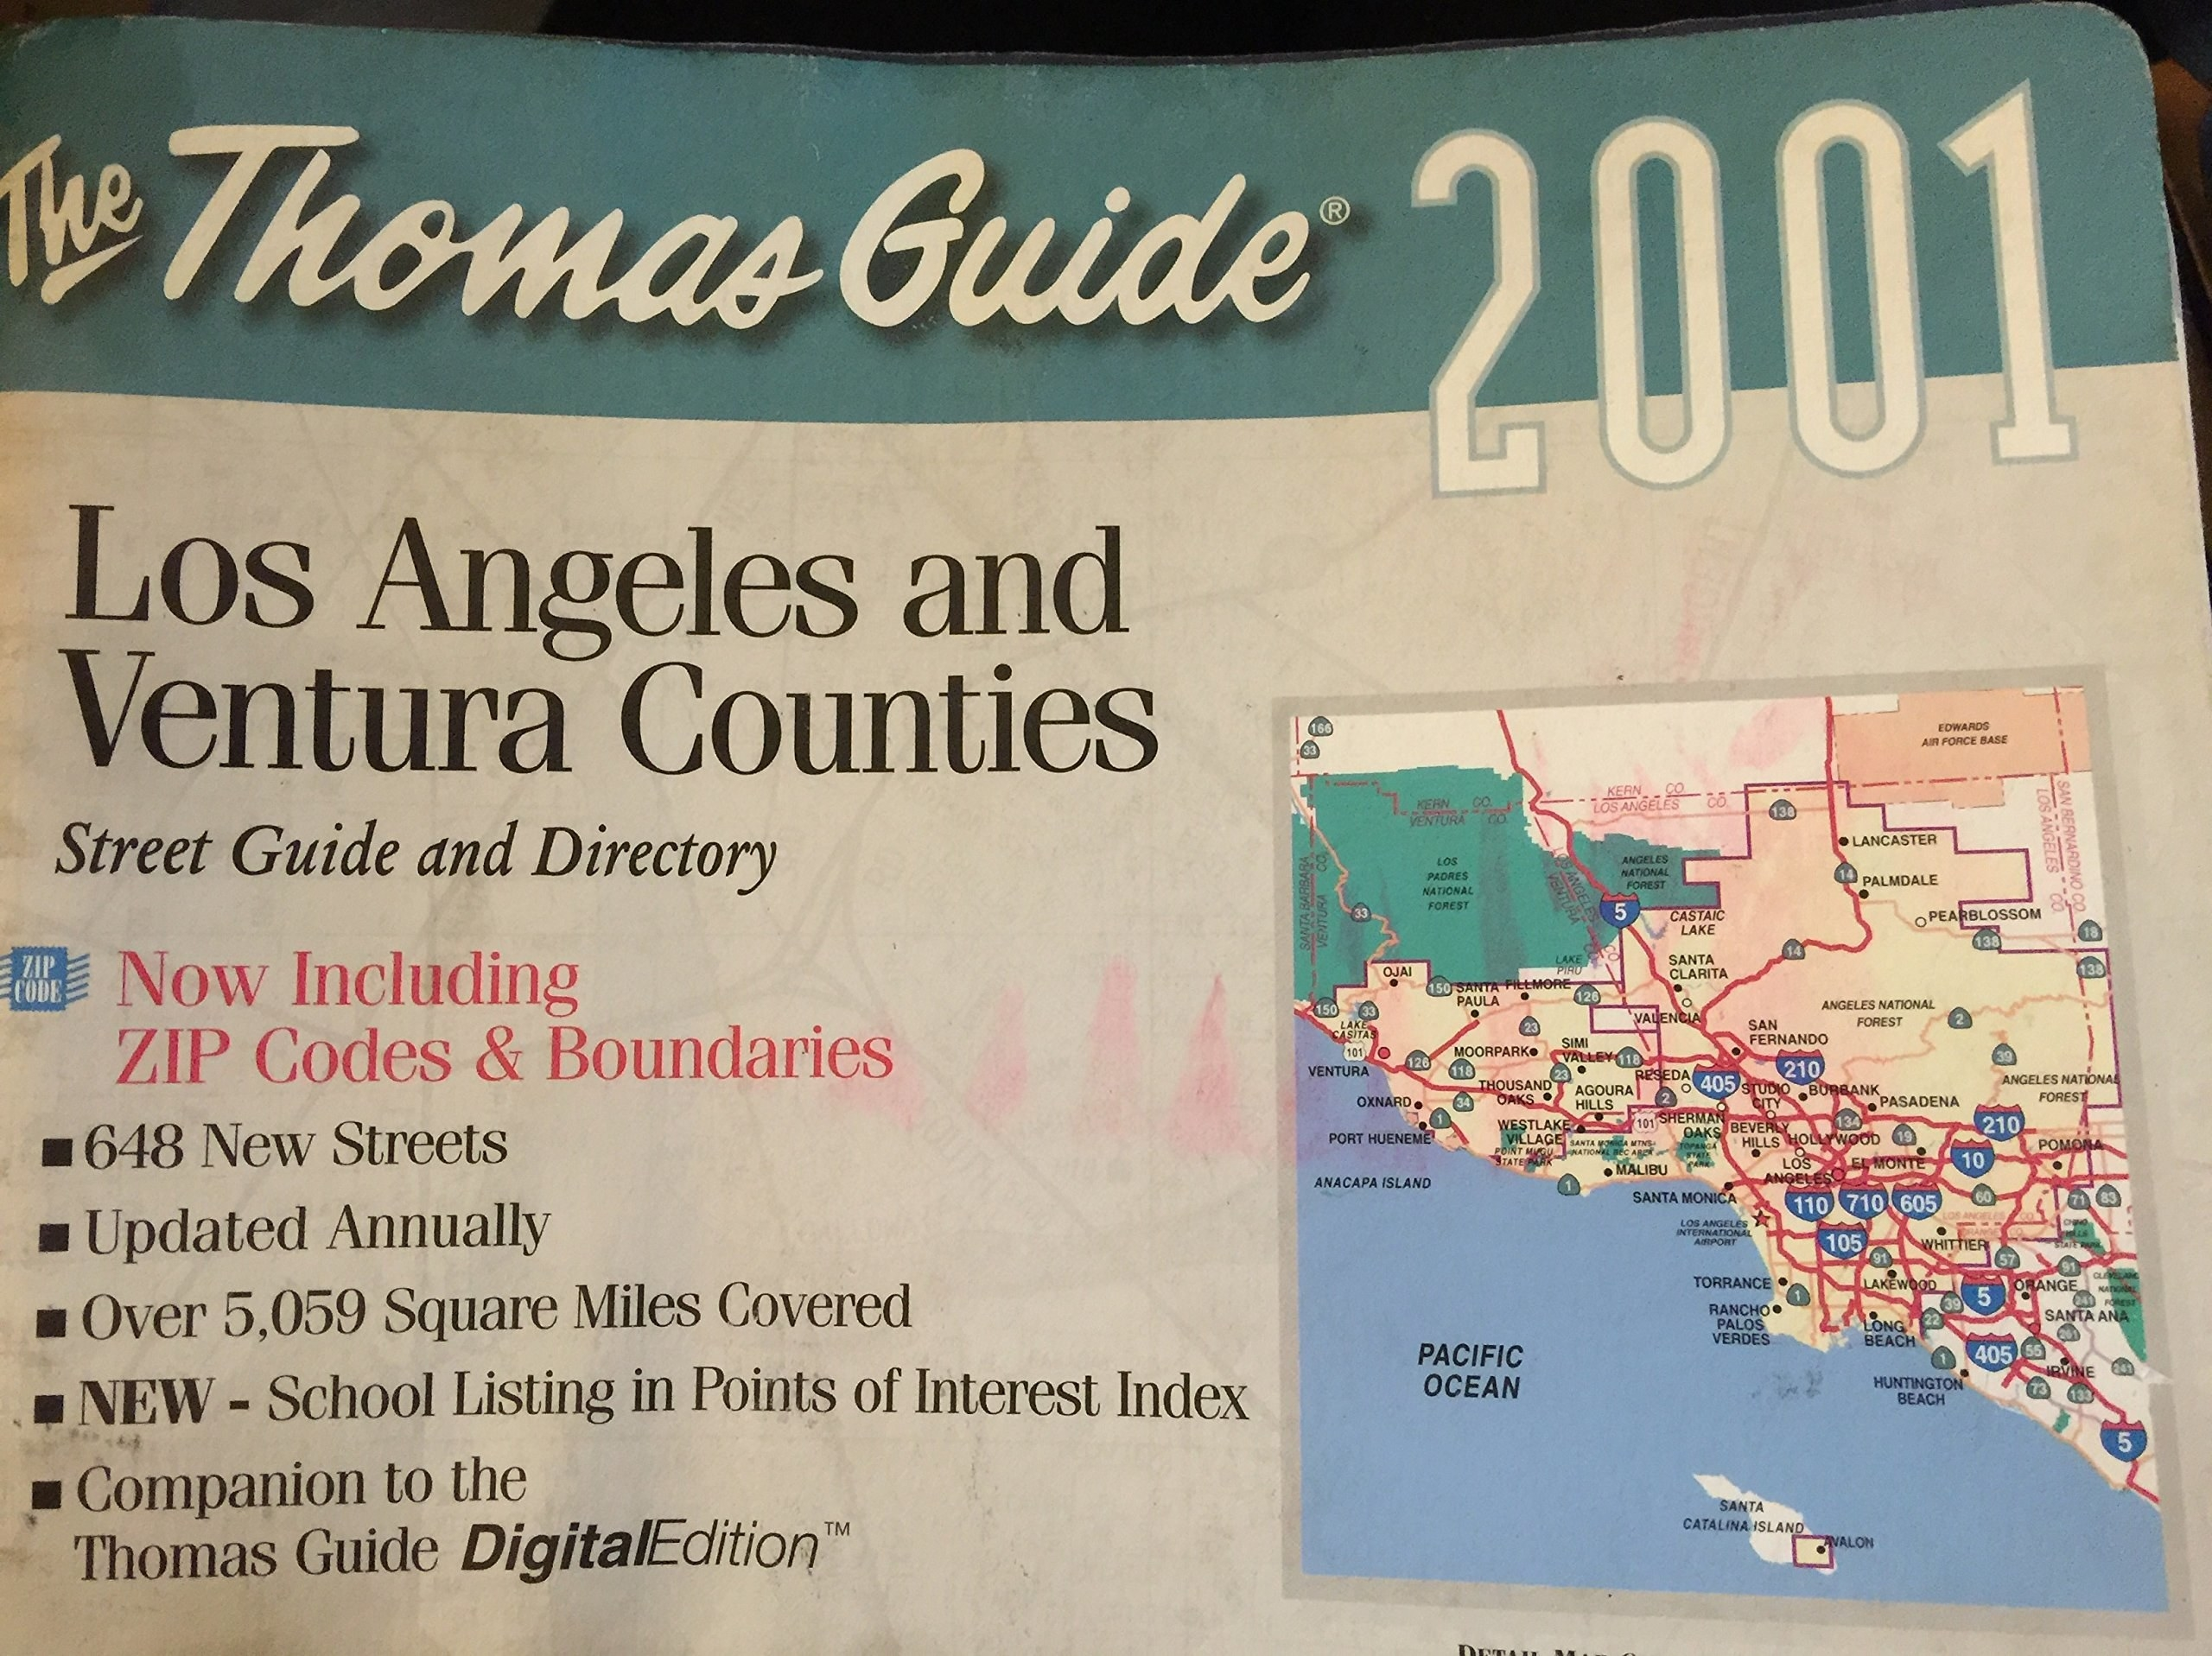 A 2001 Thomas Guide atlas for Los Angeles and Ventura Counties